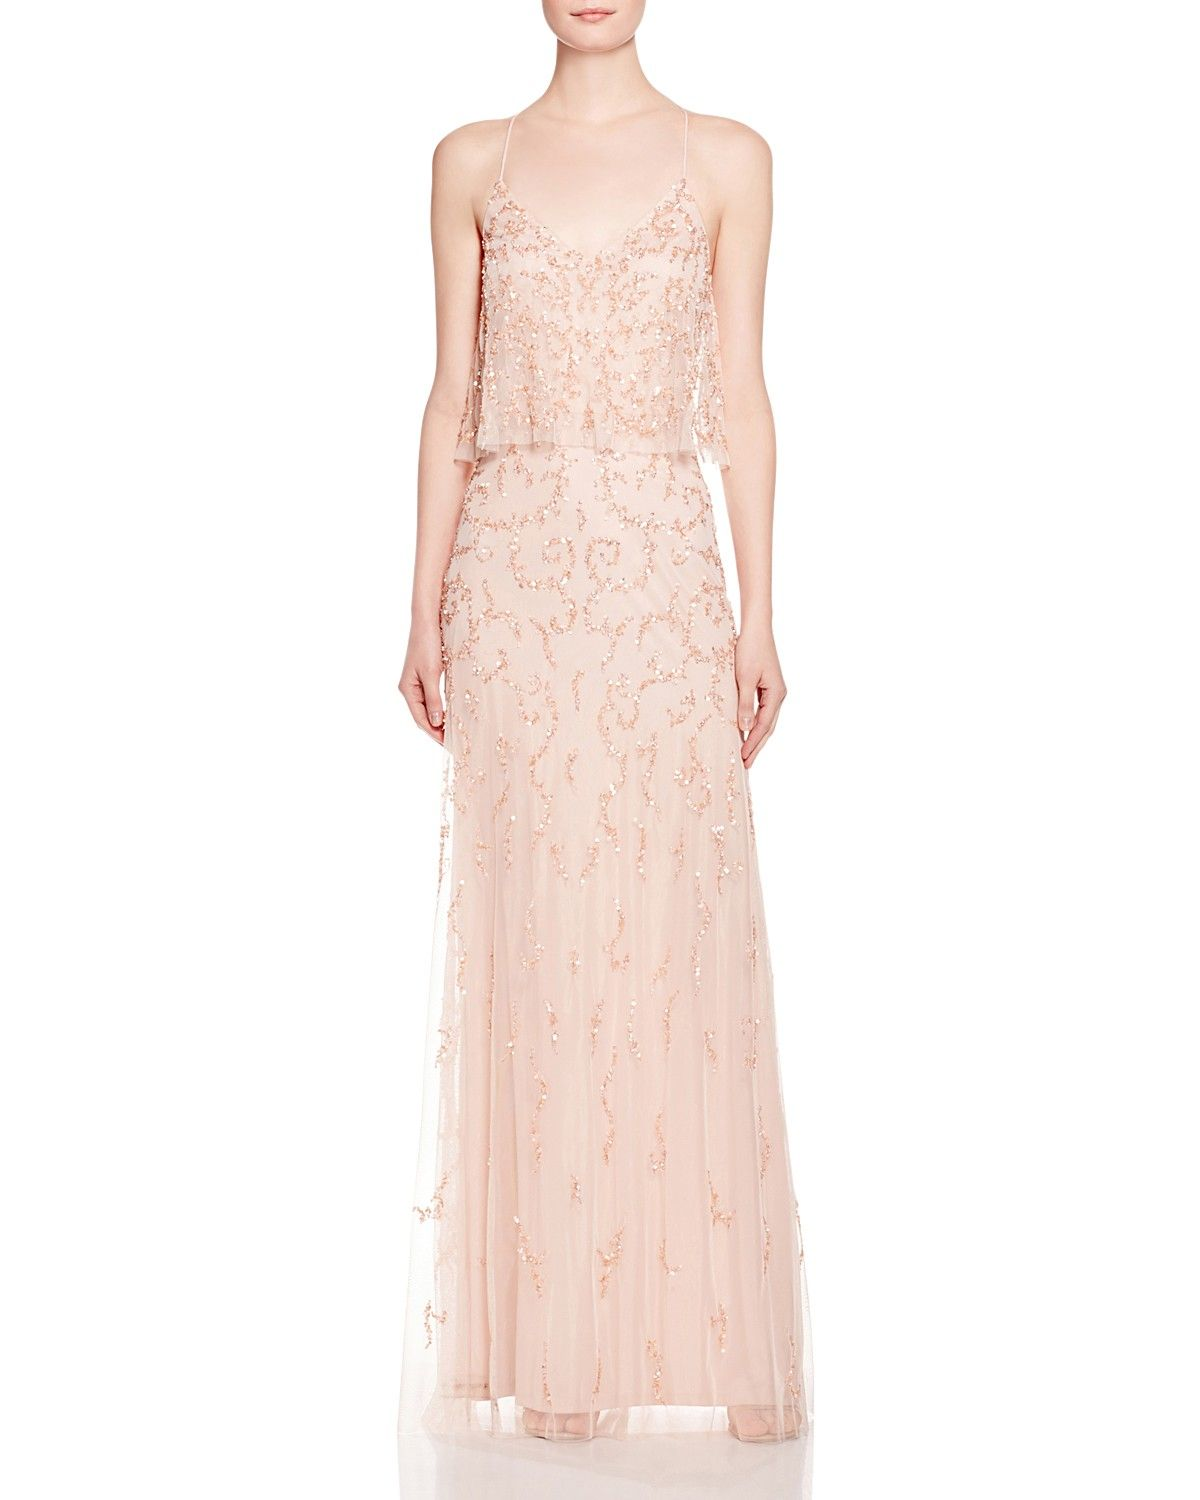 Aidan mattox embellished bodice overlay gown bloomingdales aidan mattox embellished bodice overlay gown bloomingdales exclusive bloomingdales ombrellifo Gallery